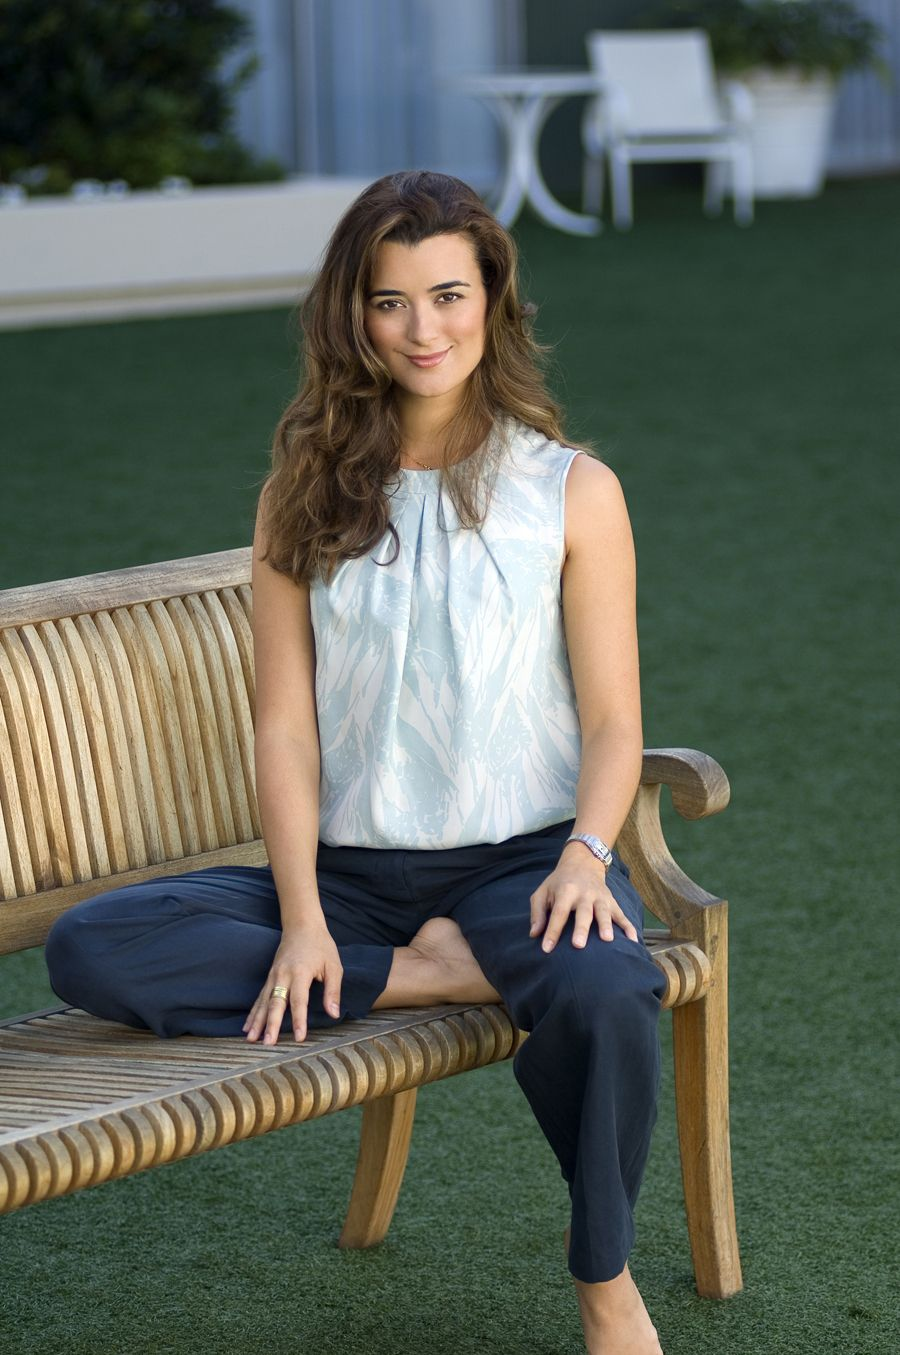 42 Hot Pictures Of Cote De Pablo From Ncis Will Raise Your -8705